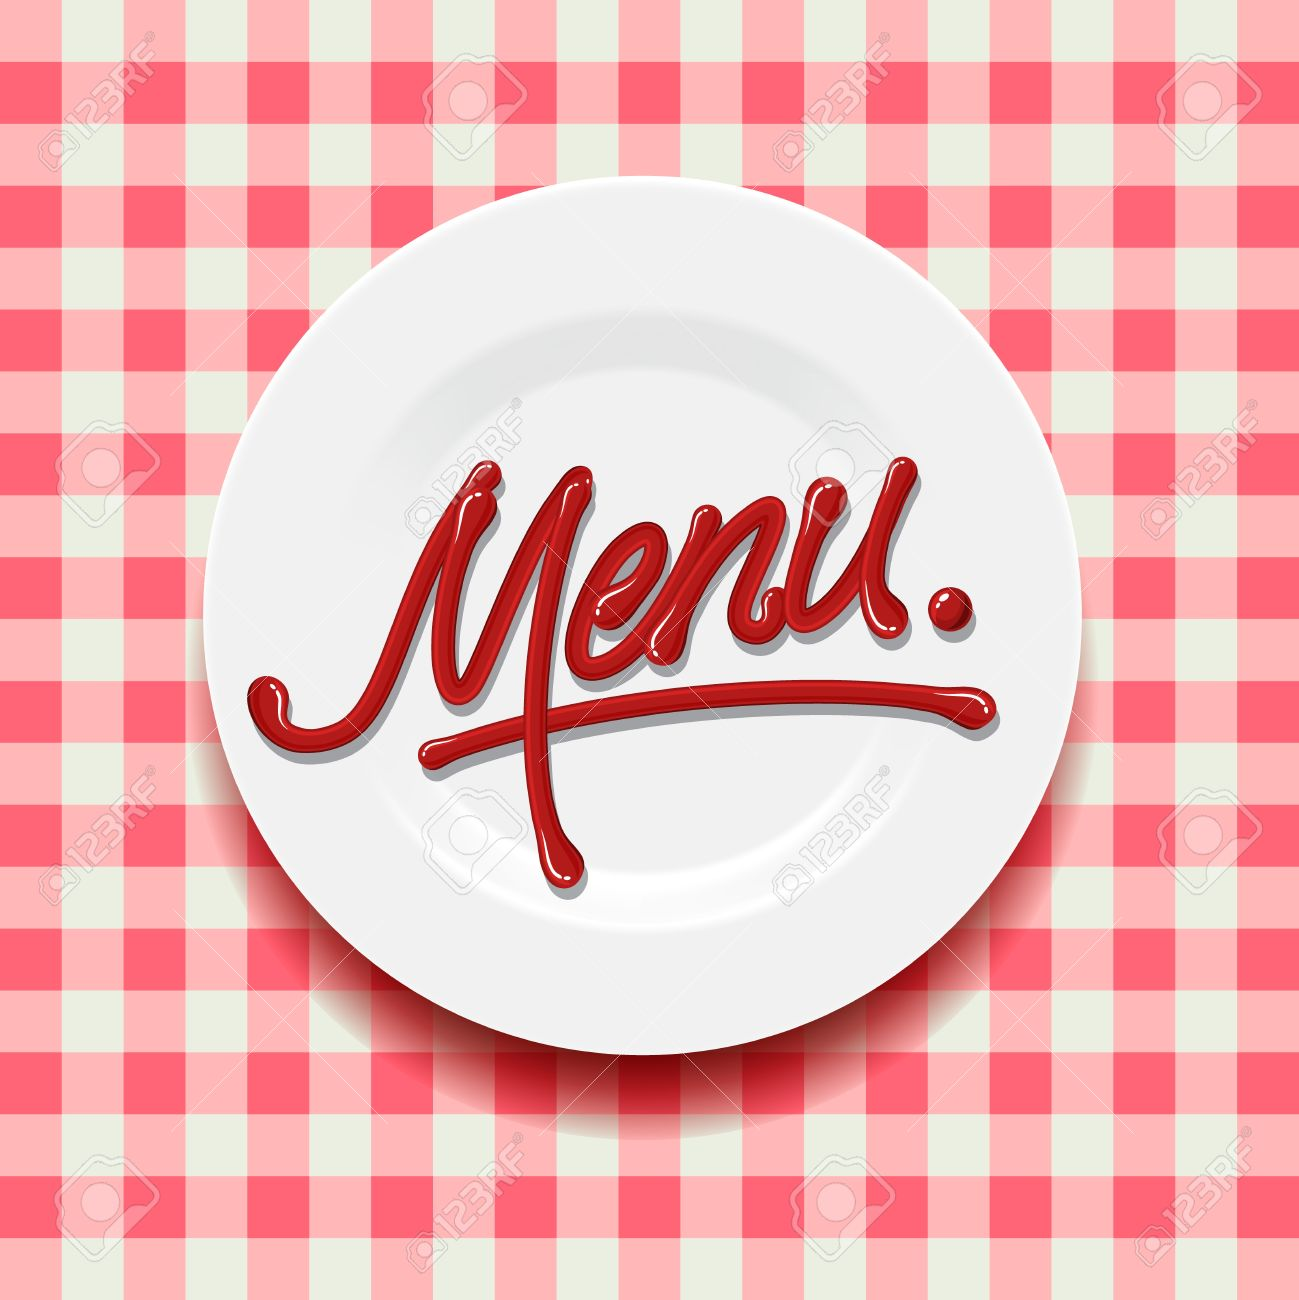 Word Menu - Made With Red Sauce On Plate Royalty Free Cliparts ...